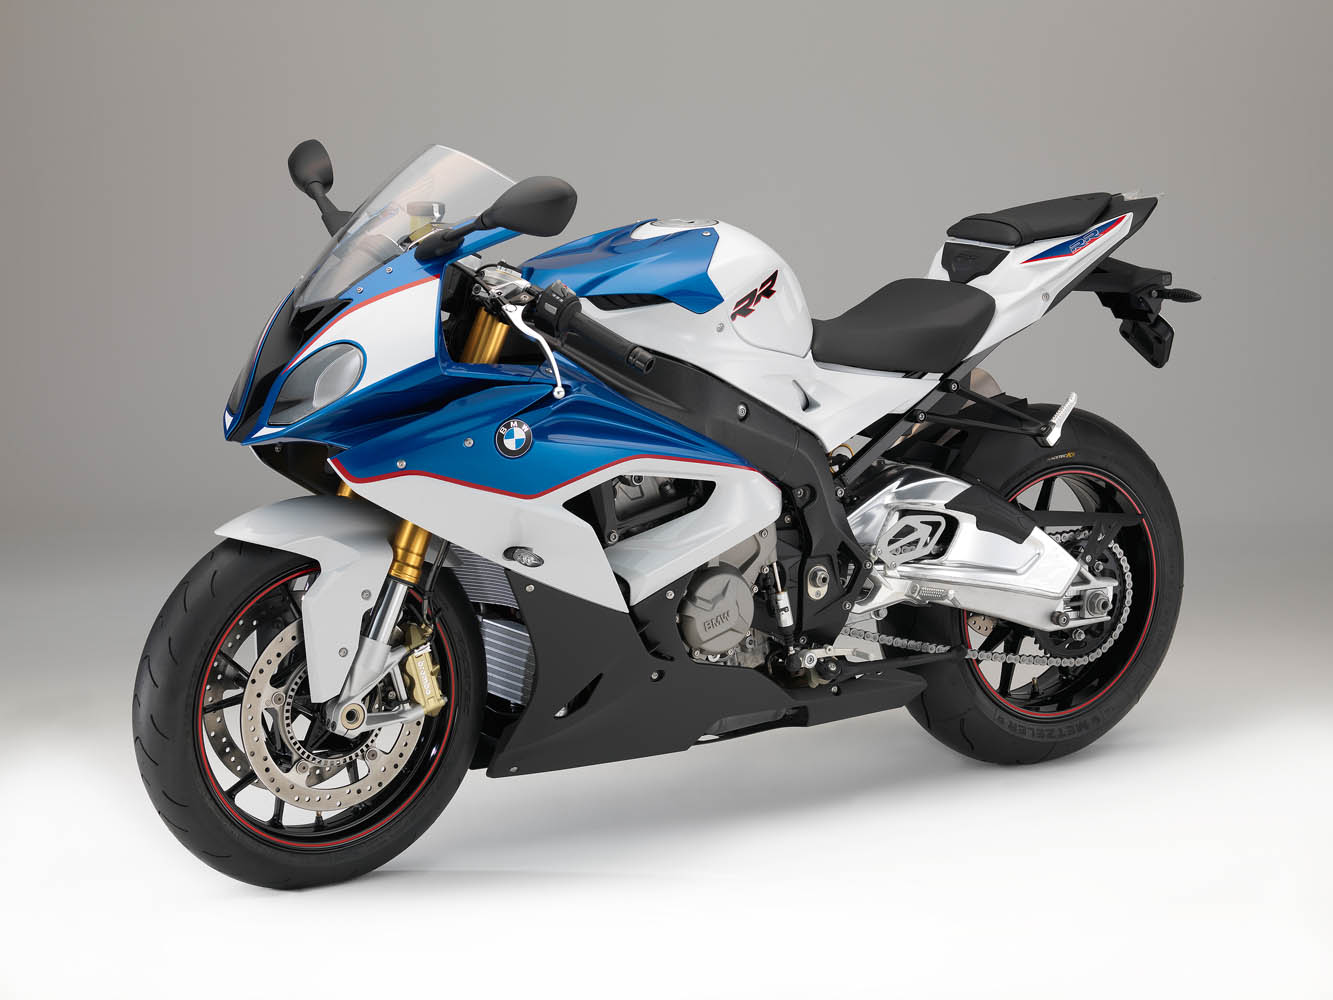 The New Bmw S 1000 Rr 2015 The Epitome Of A Superbike Motorcycle